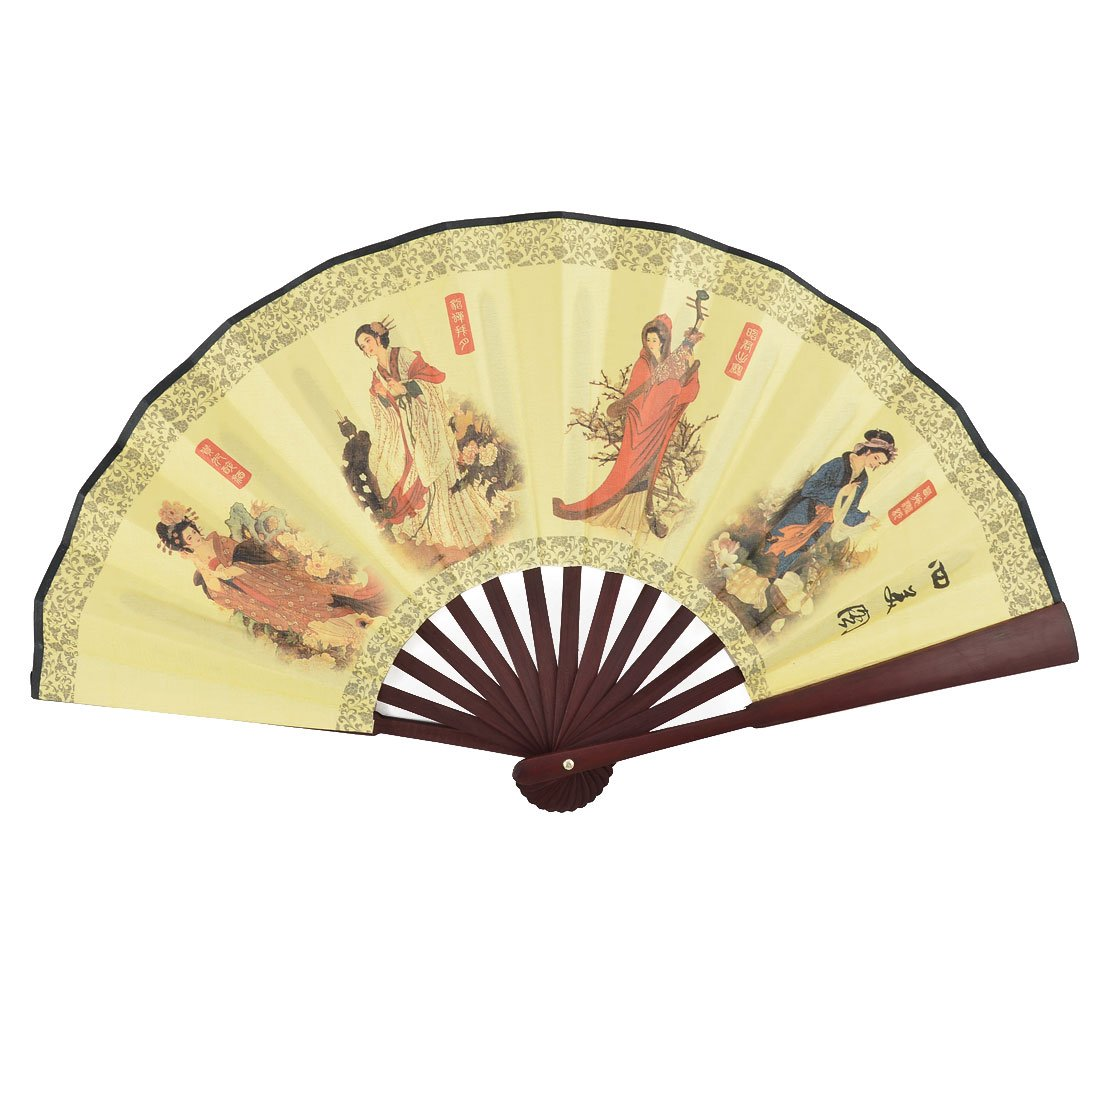 uxcell Bamboo Handle Beauty Painting Poem Pattern Chinese Vintage Style Foldable Hand Fan